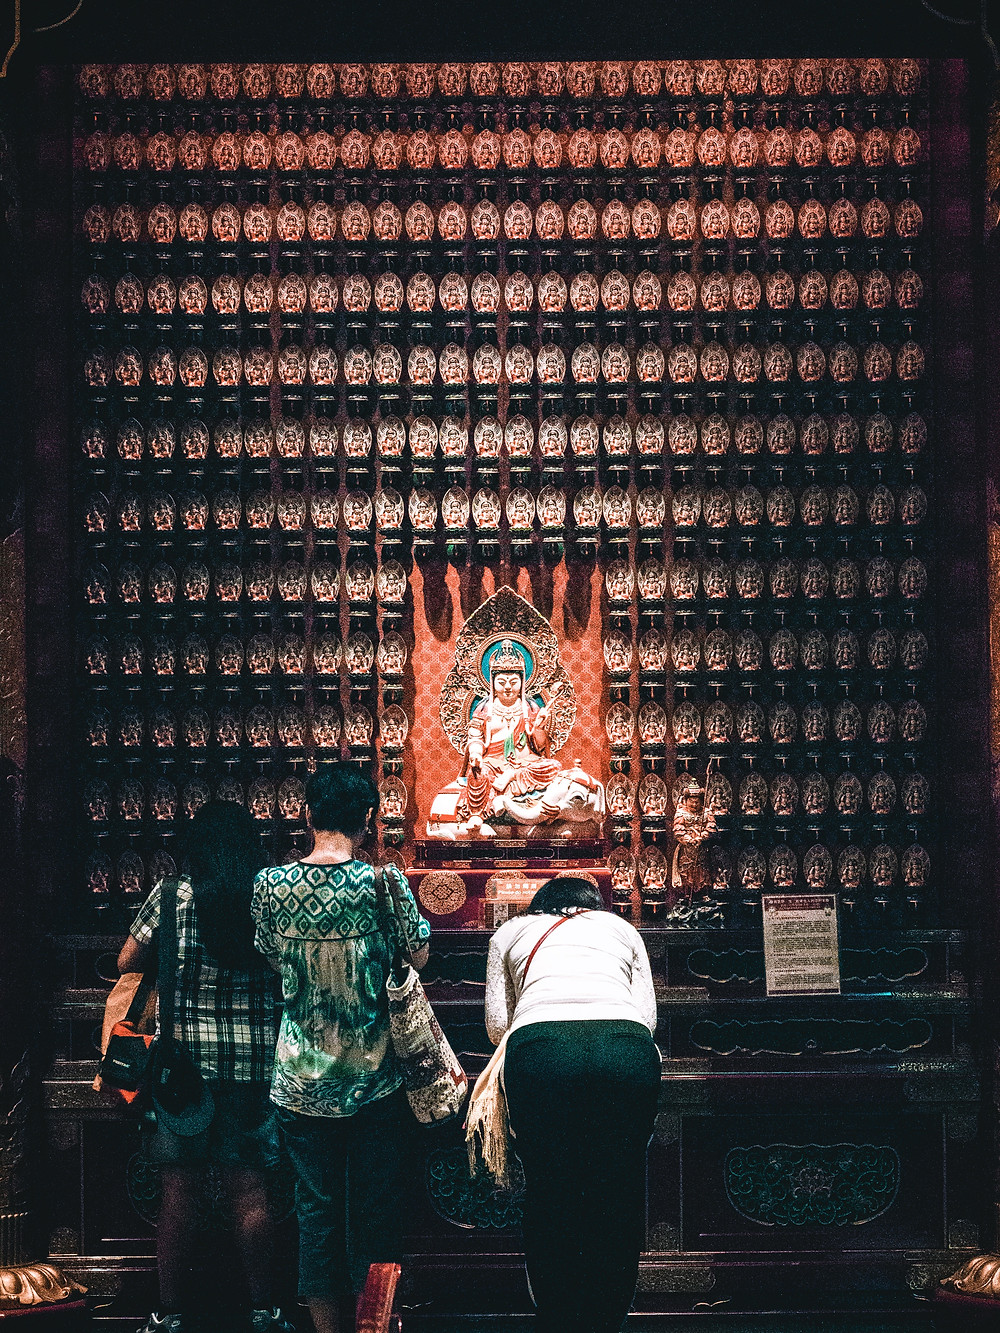 An older woman and 2 younger women praying to the Buddha statue